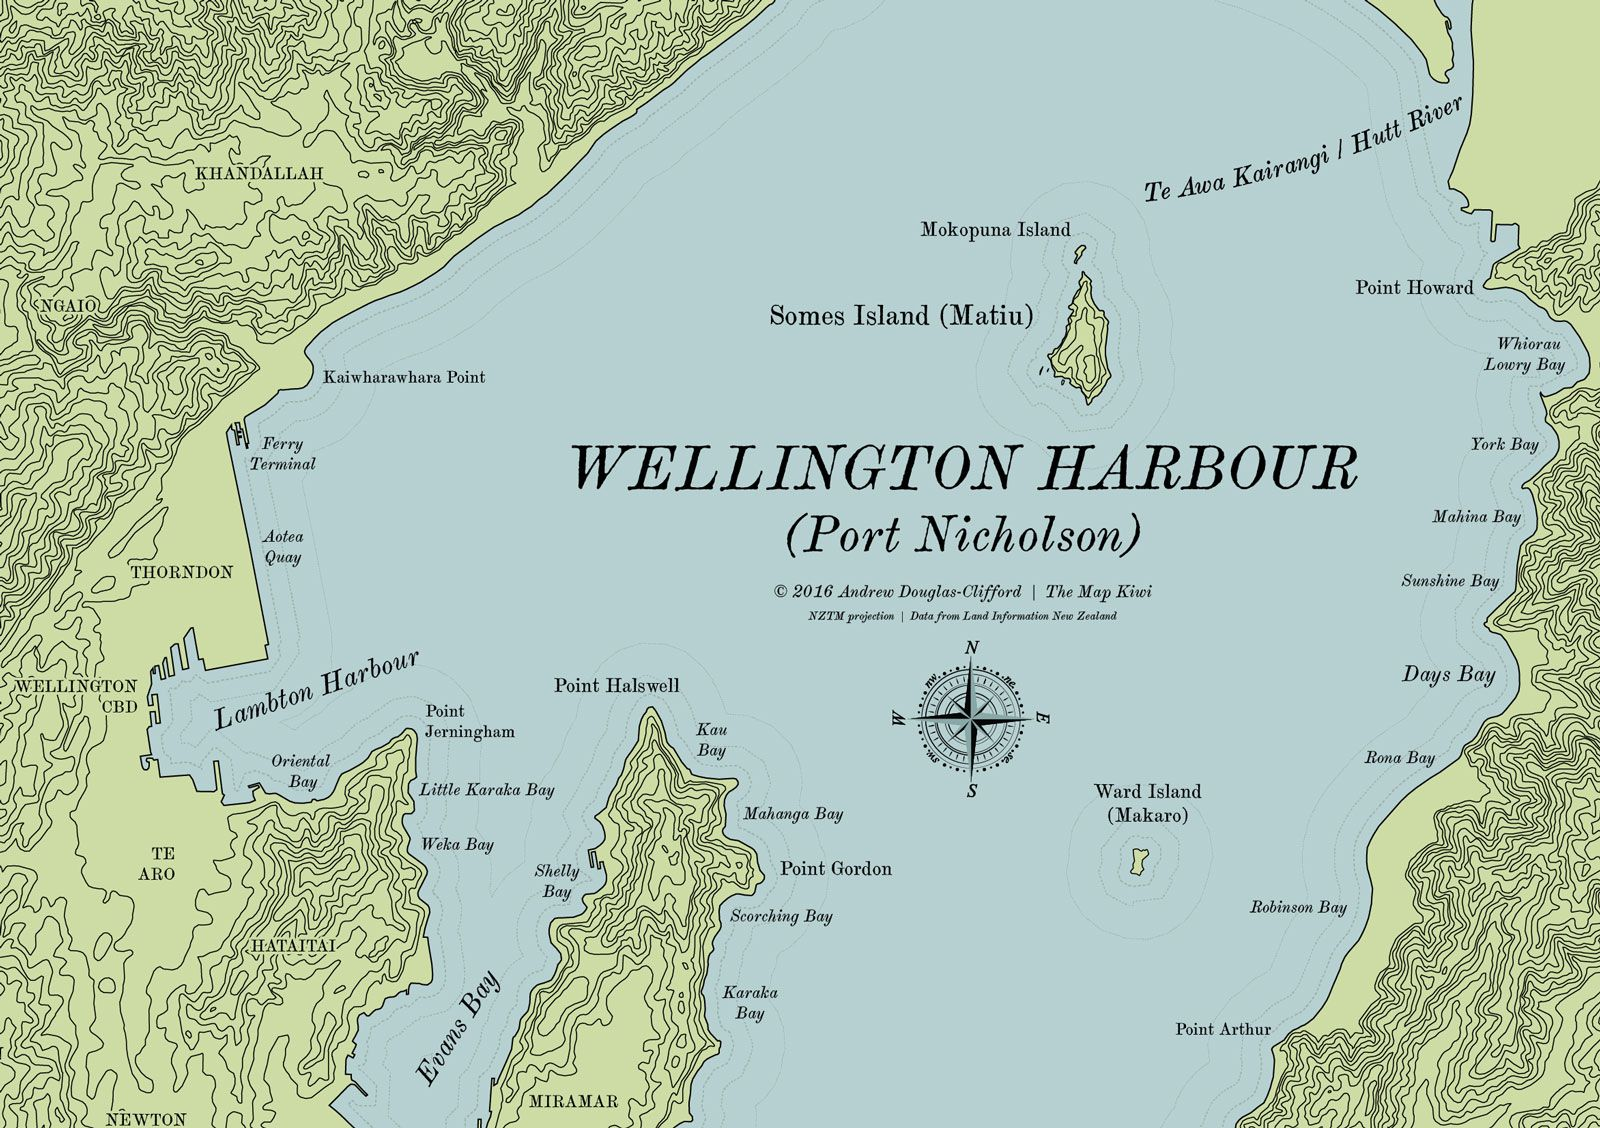 Map Wellington New Zealand.Wellington Harbour Terrain Map Maps By The Map Kiwi Map